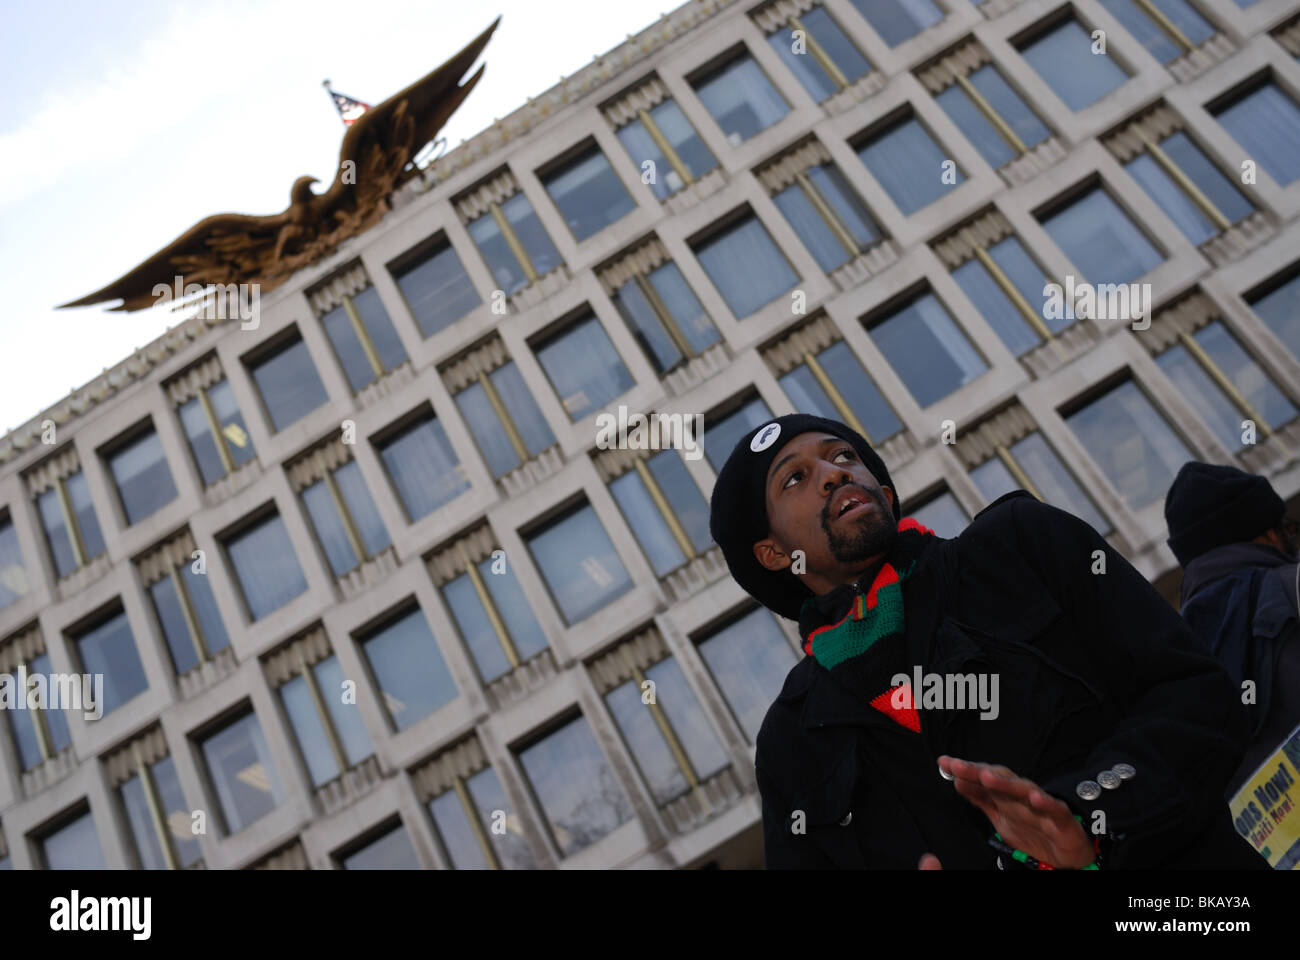 A Haitian man stands outside the US Embassy in London during a protest demanding justice for Haiti. - Stock Image